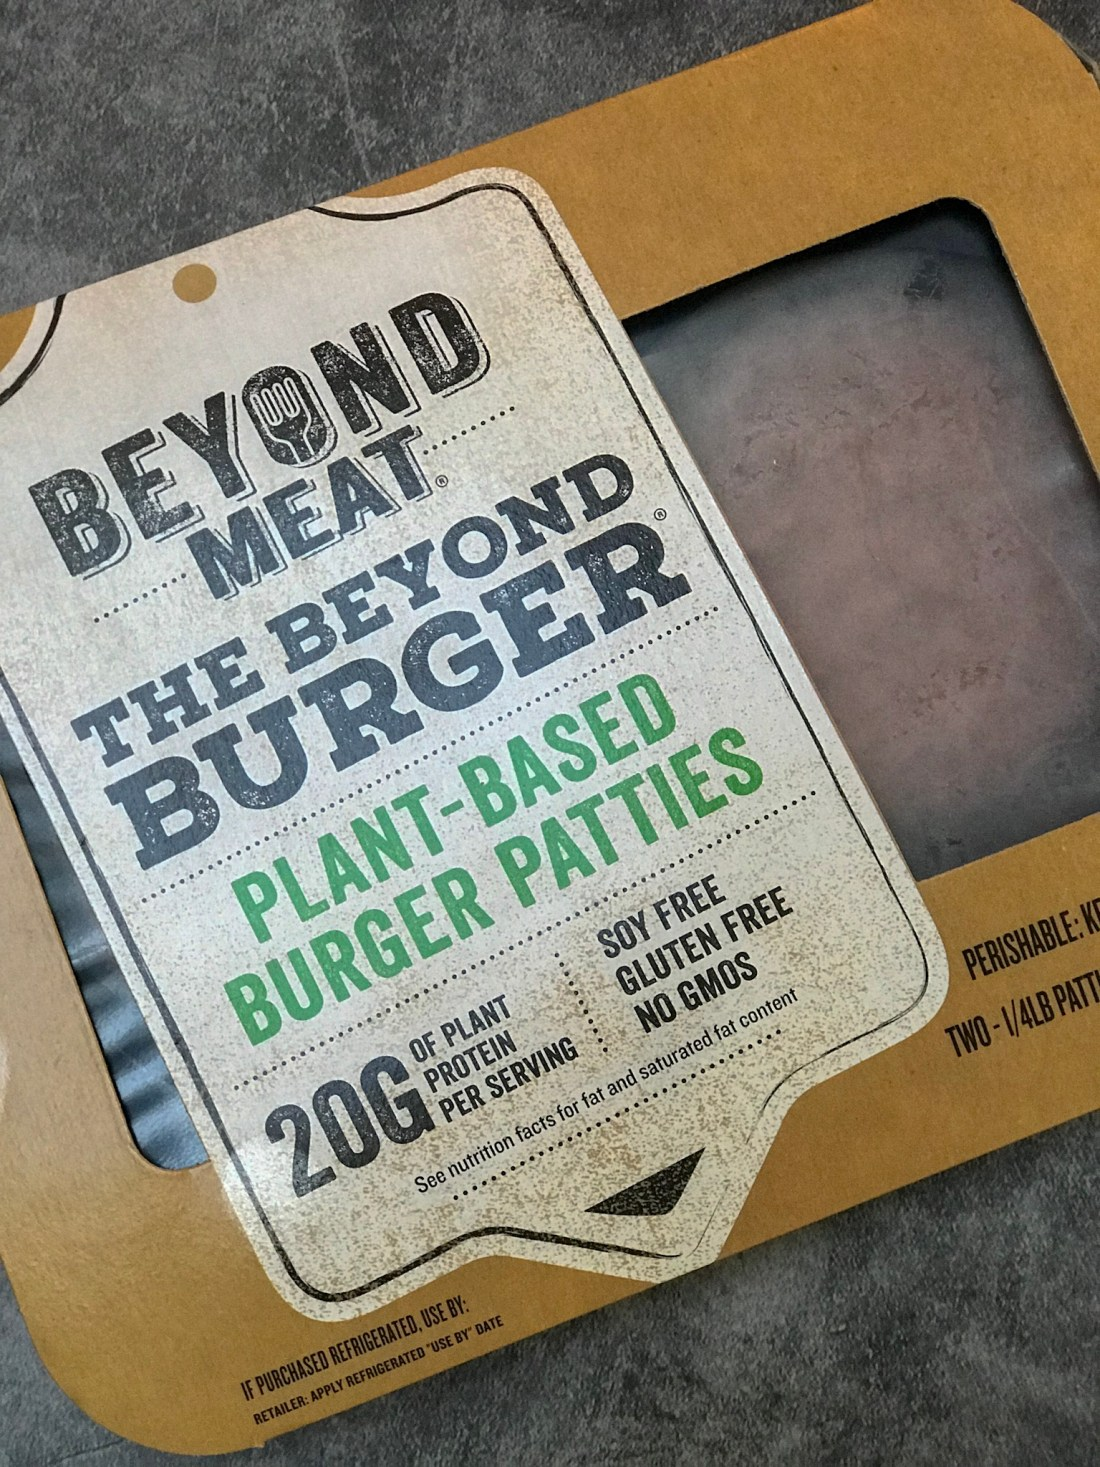 The plant based burger